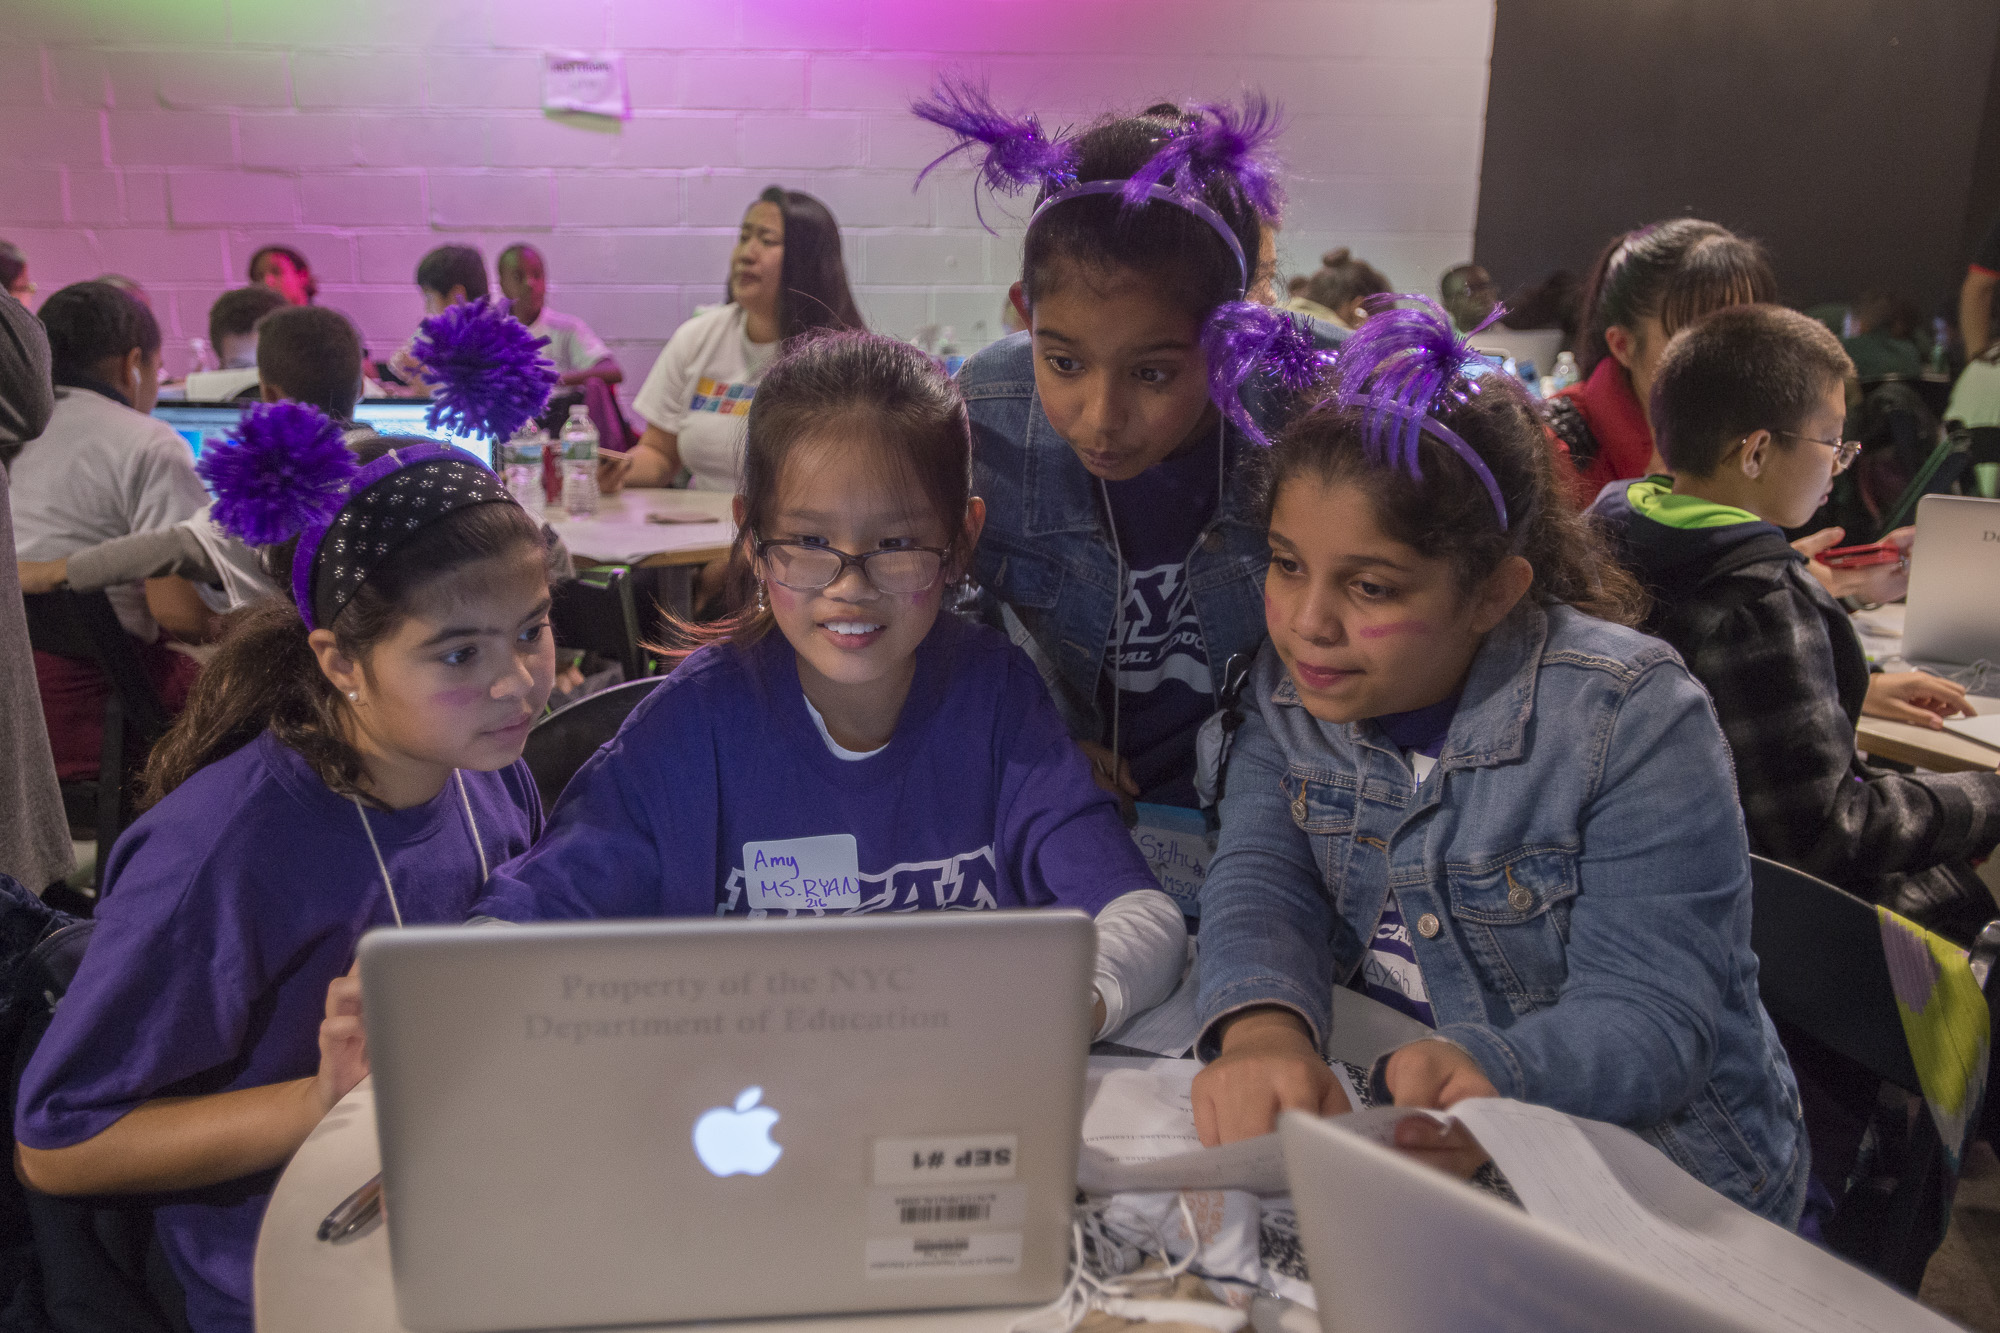 Girls at a Computer Science Hackathon